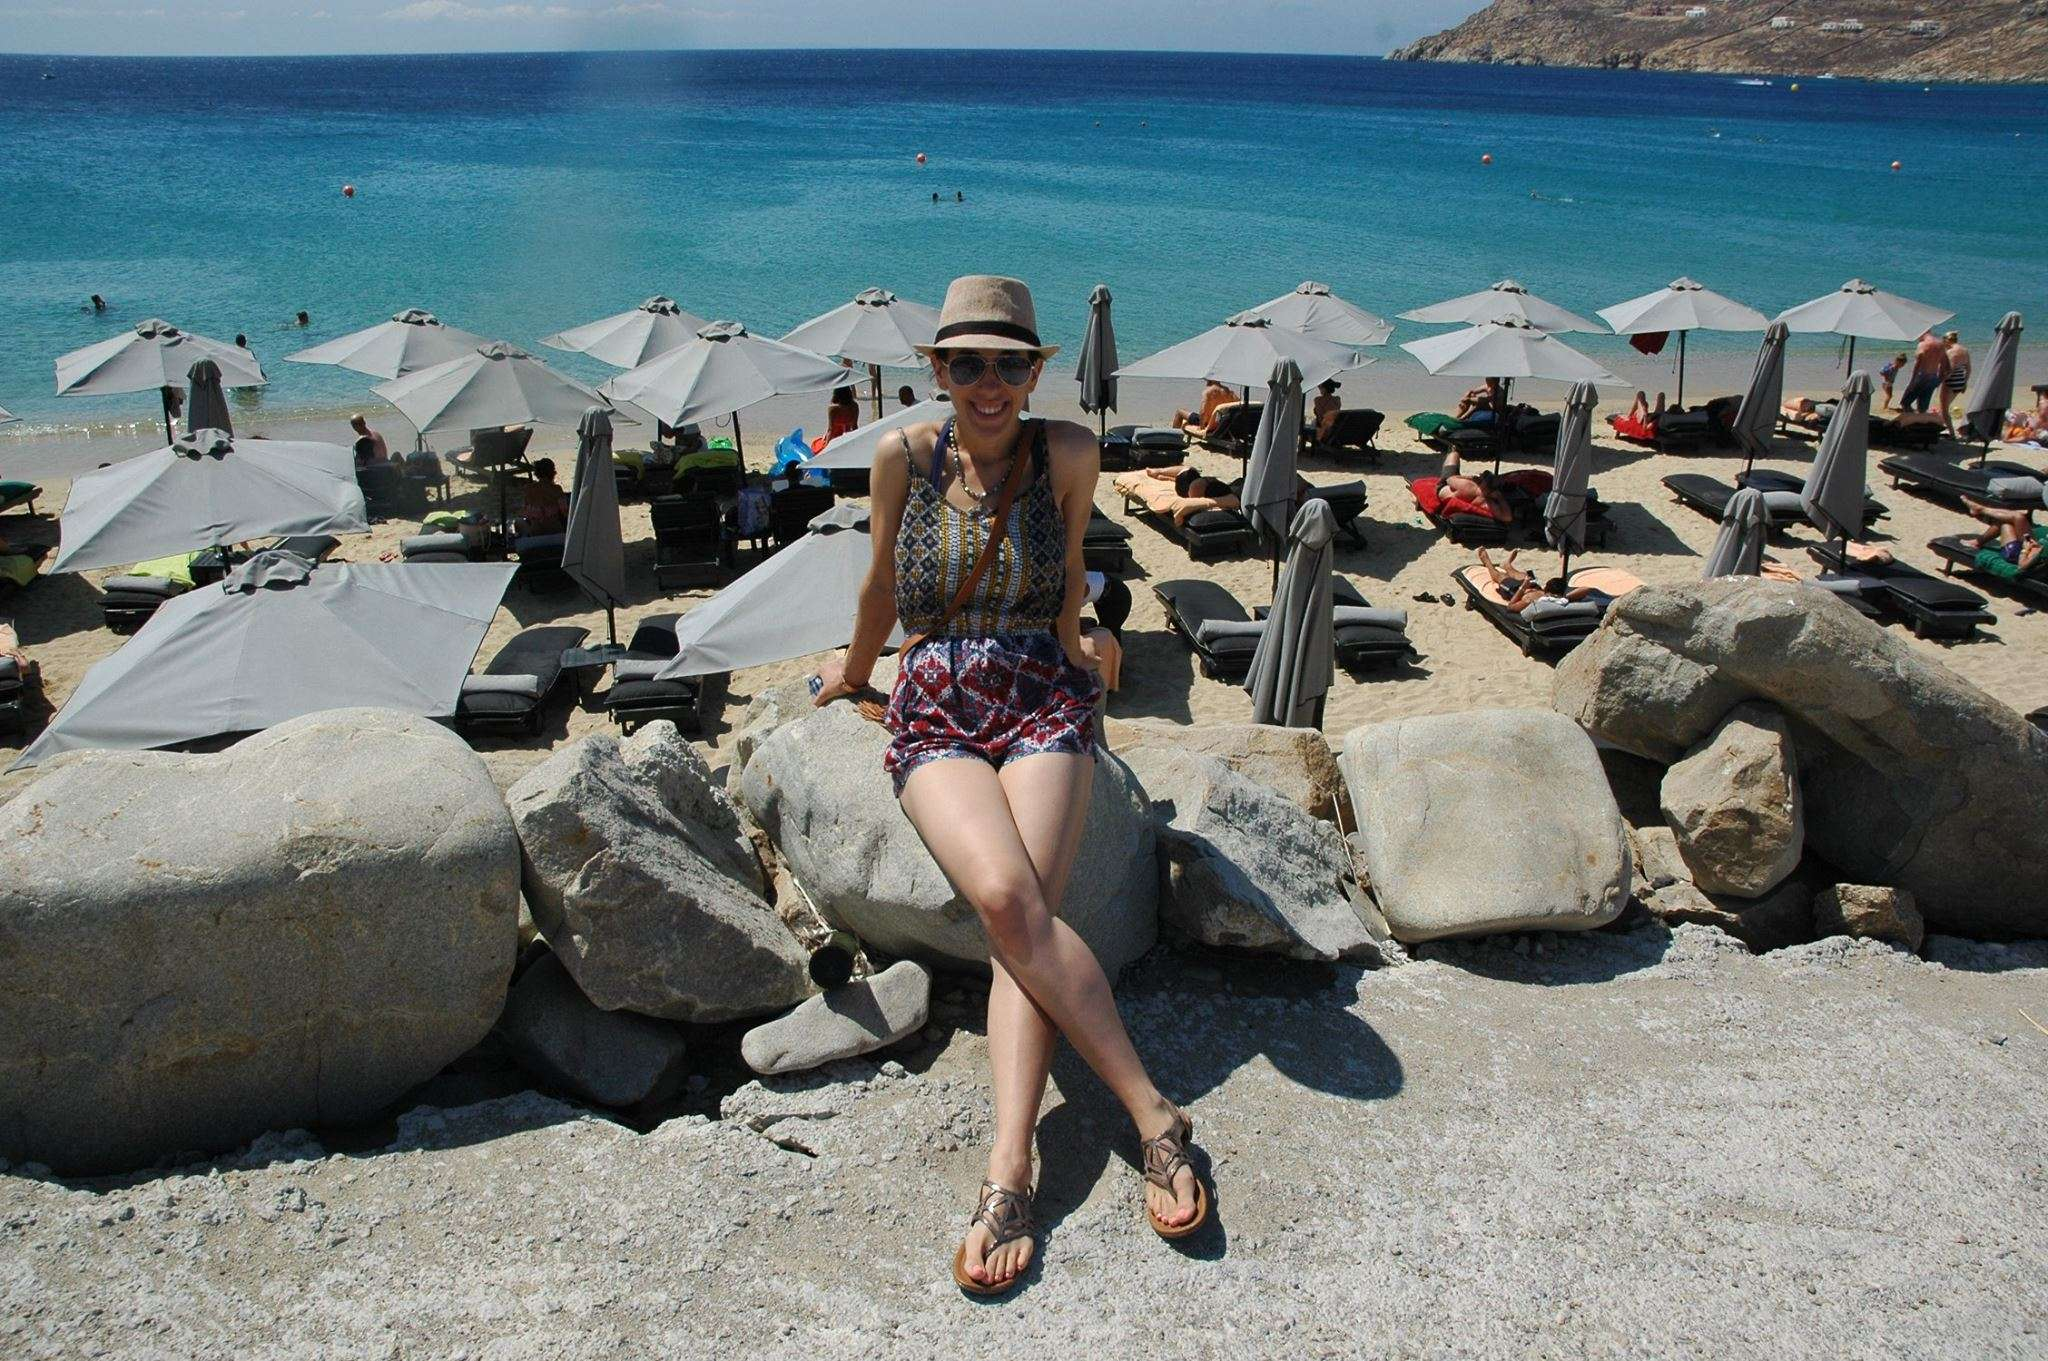 Waiting for the shuttle in front of Elia Beach, Mykonos